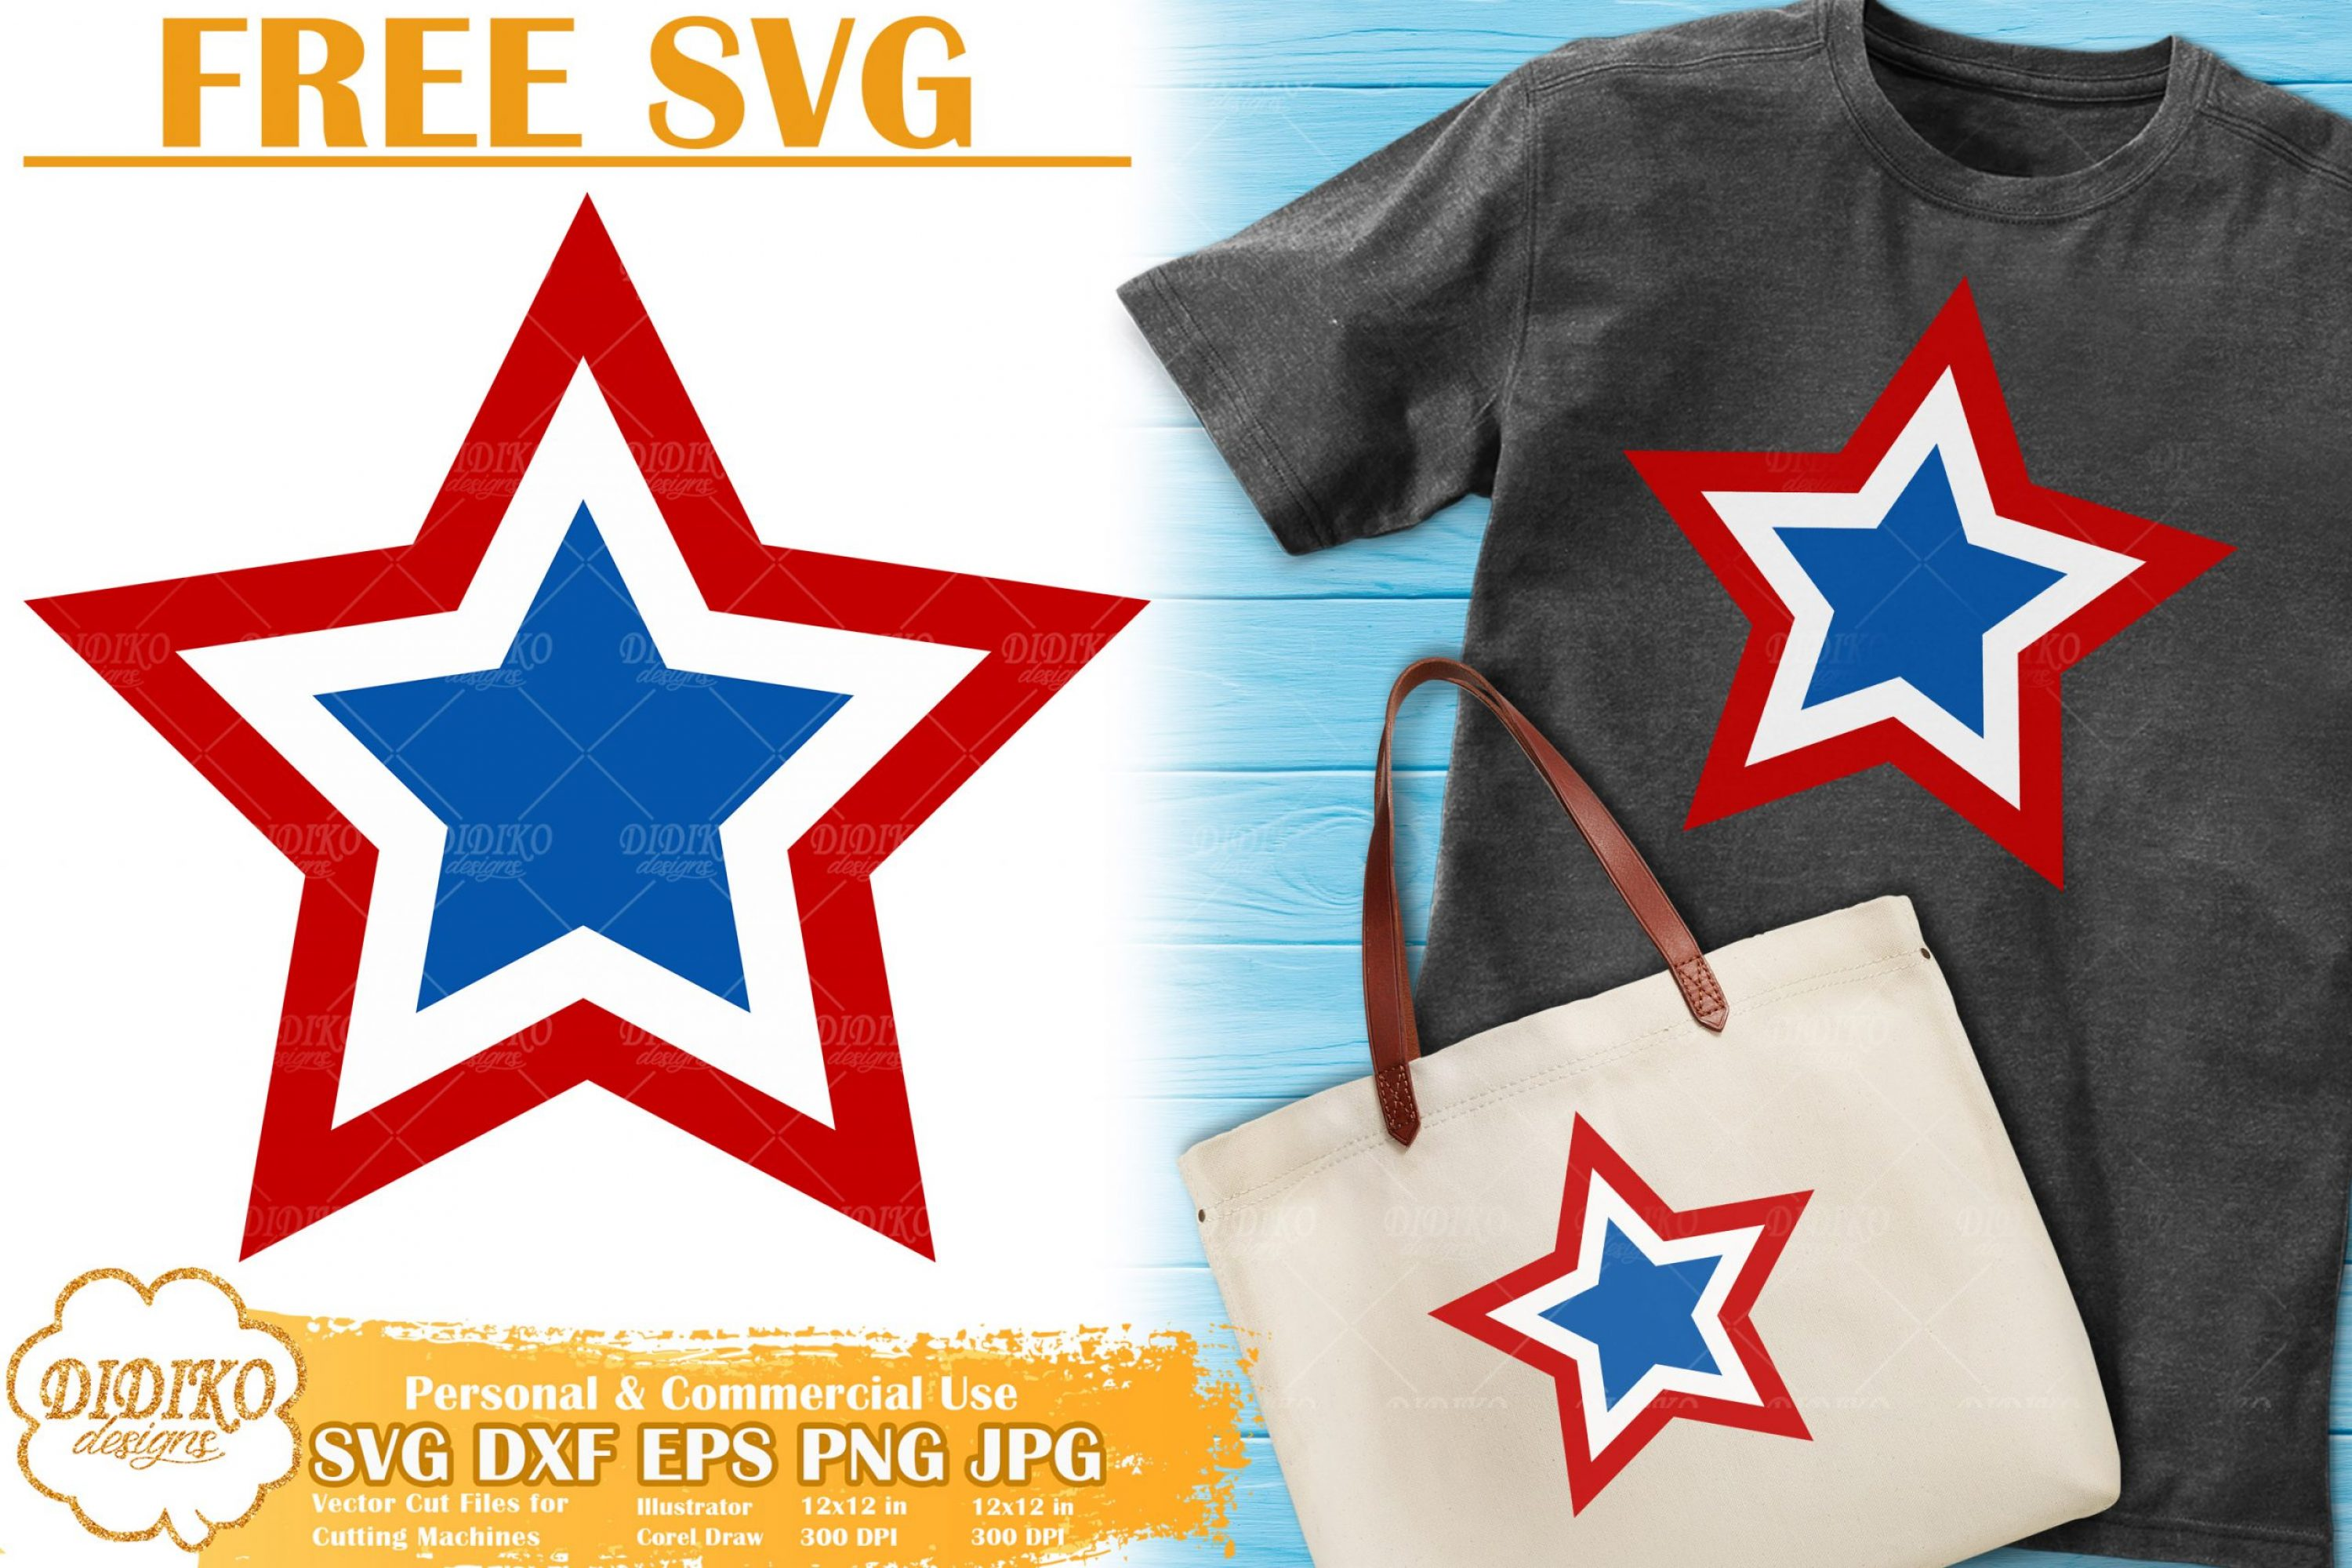 4th of July Star Free SVG | USA Flag Free SVG